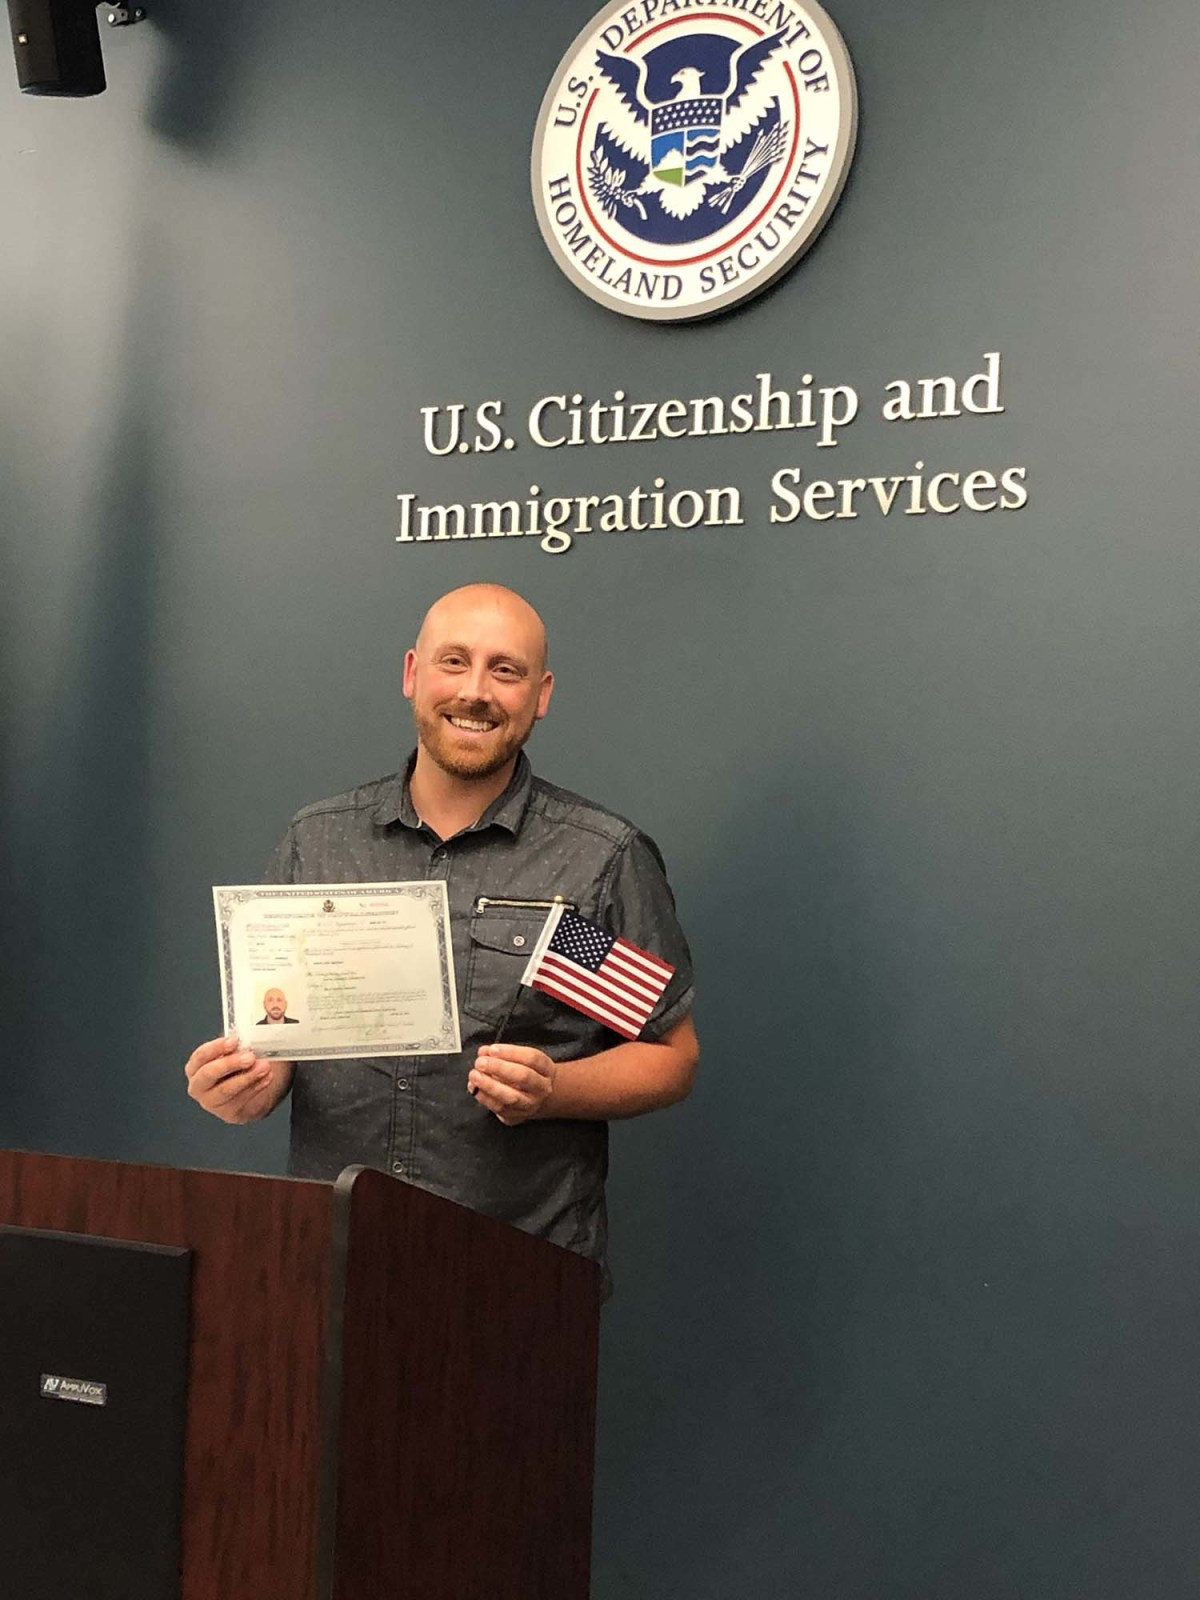 Becoming an American citizen